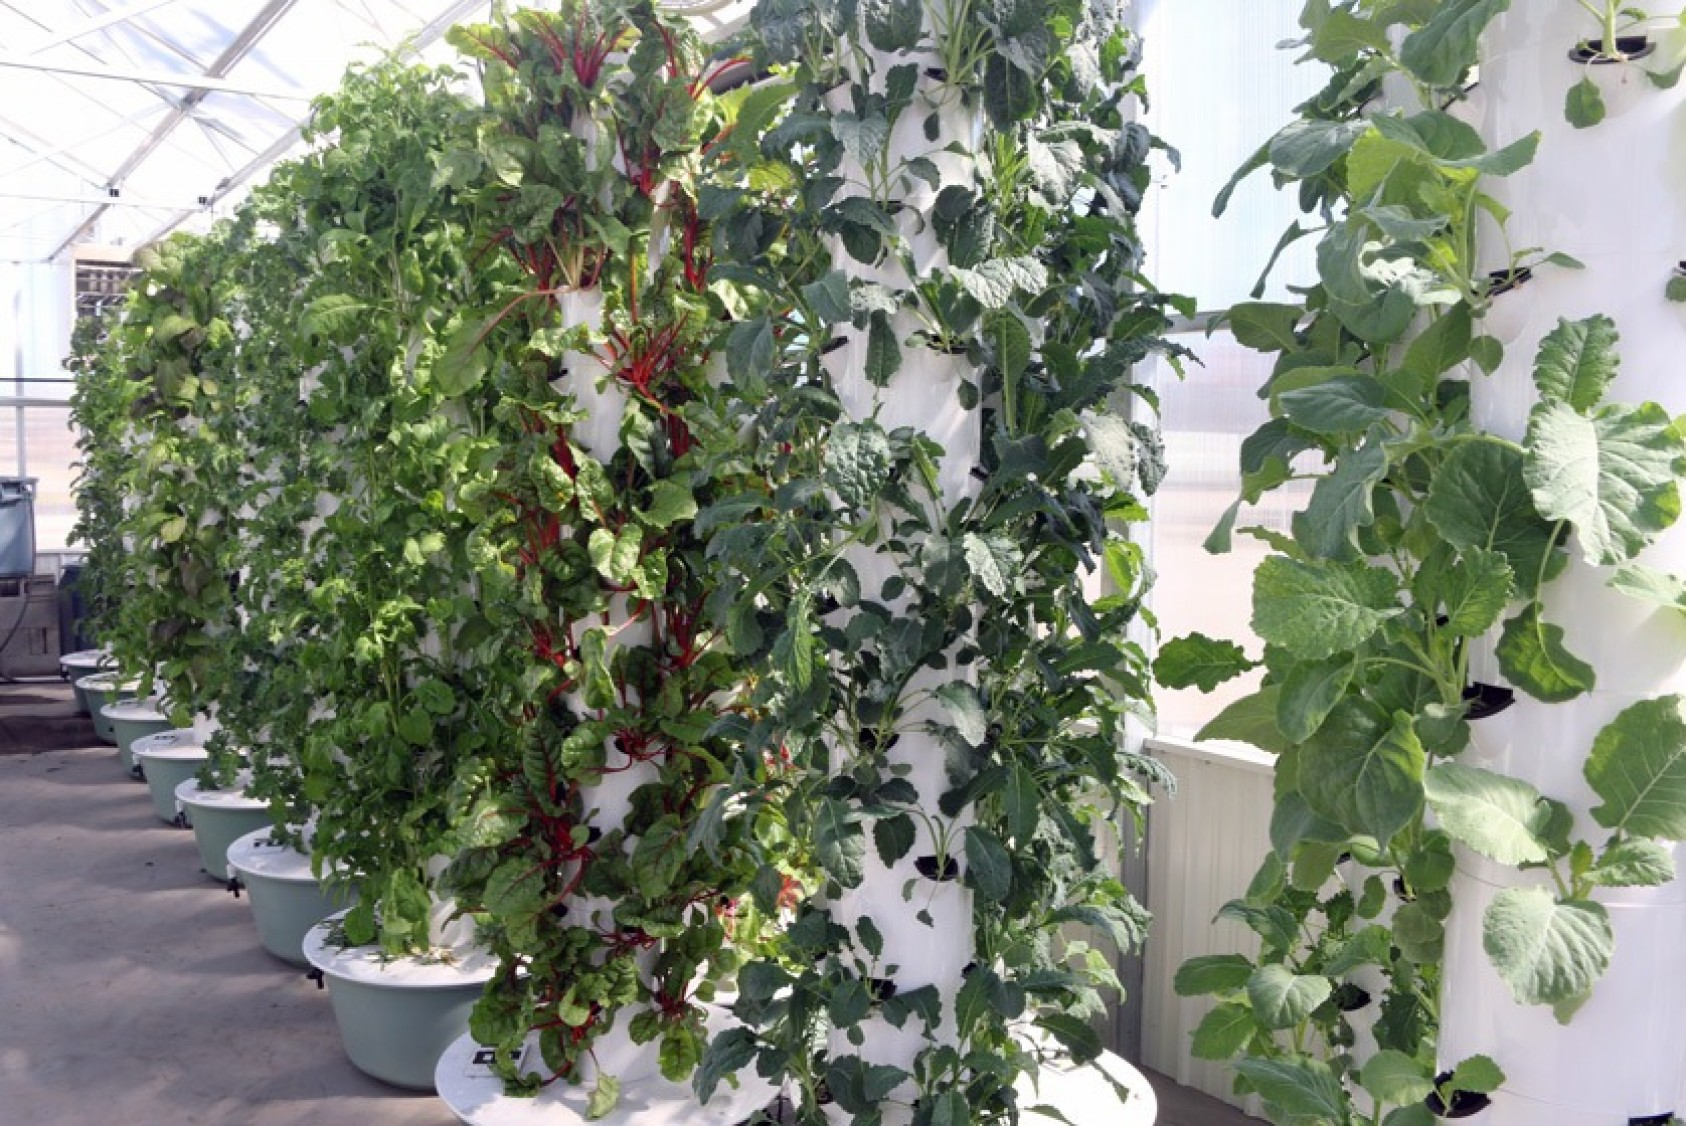 Aeroponic tower gardens in the greenhouse